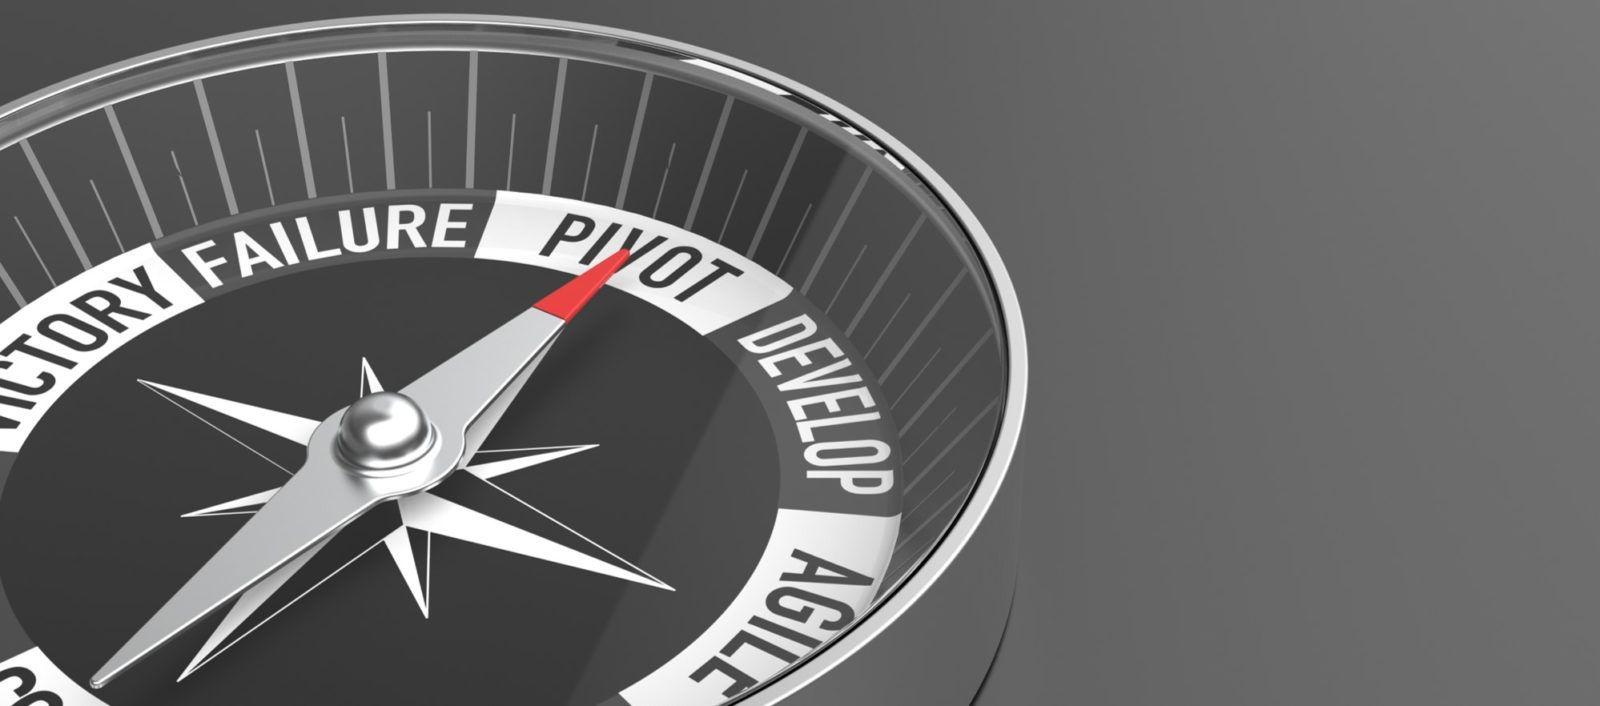 COVID-19 Pivot: Guidance for Small Business Survival and Restructuring